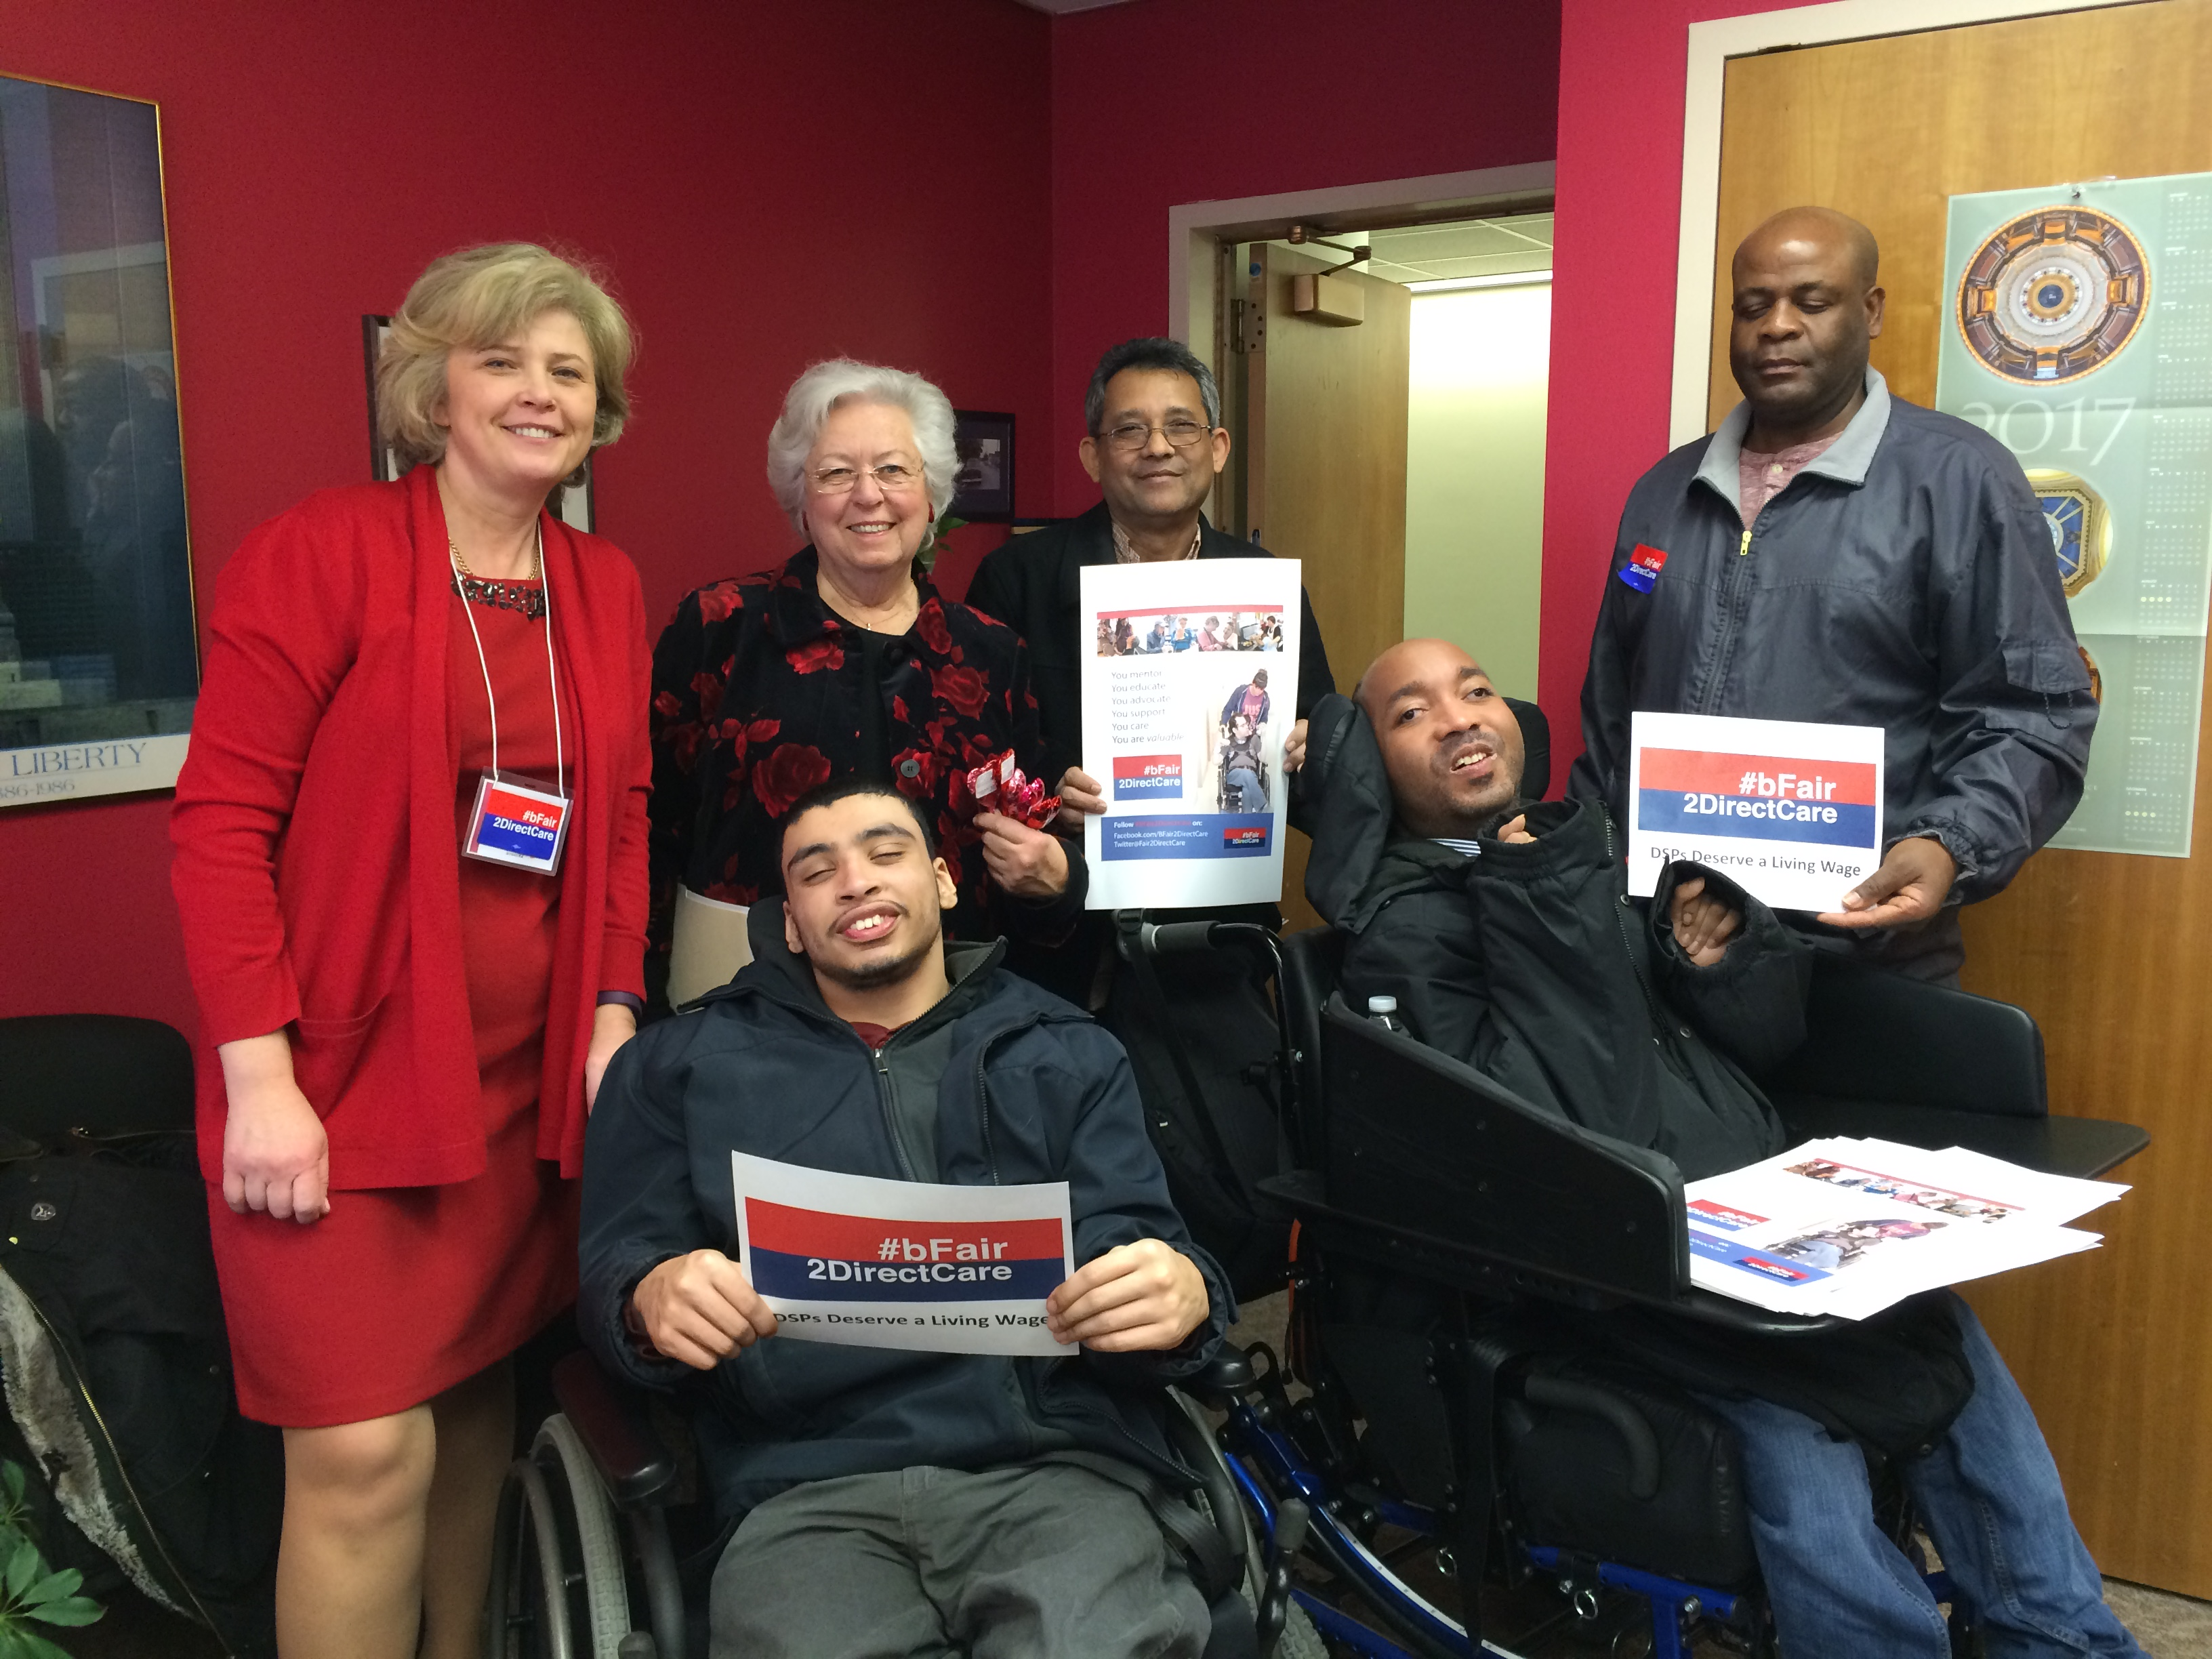 Sandy meeting with #bfair2DirectCare about their initiatives in Albany to increase budget funding for direct care workers.<br />&nbsp;